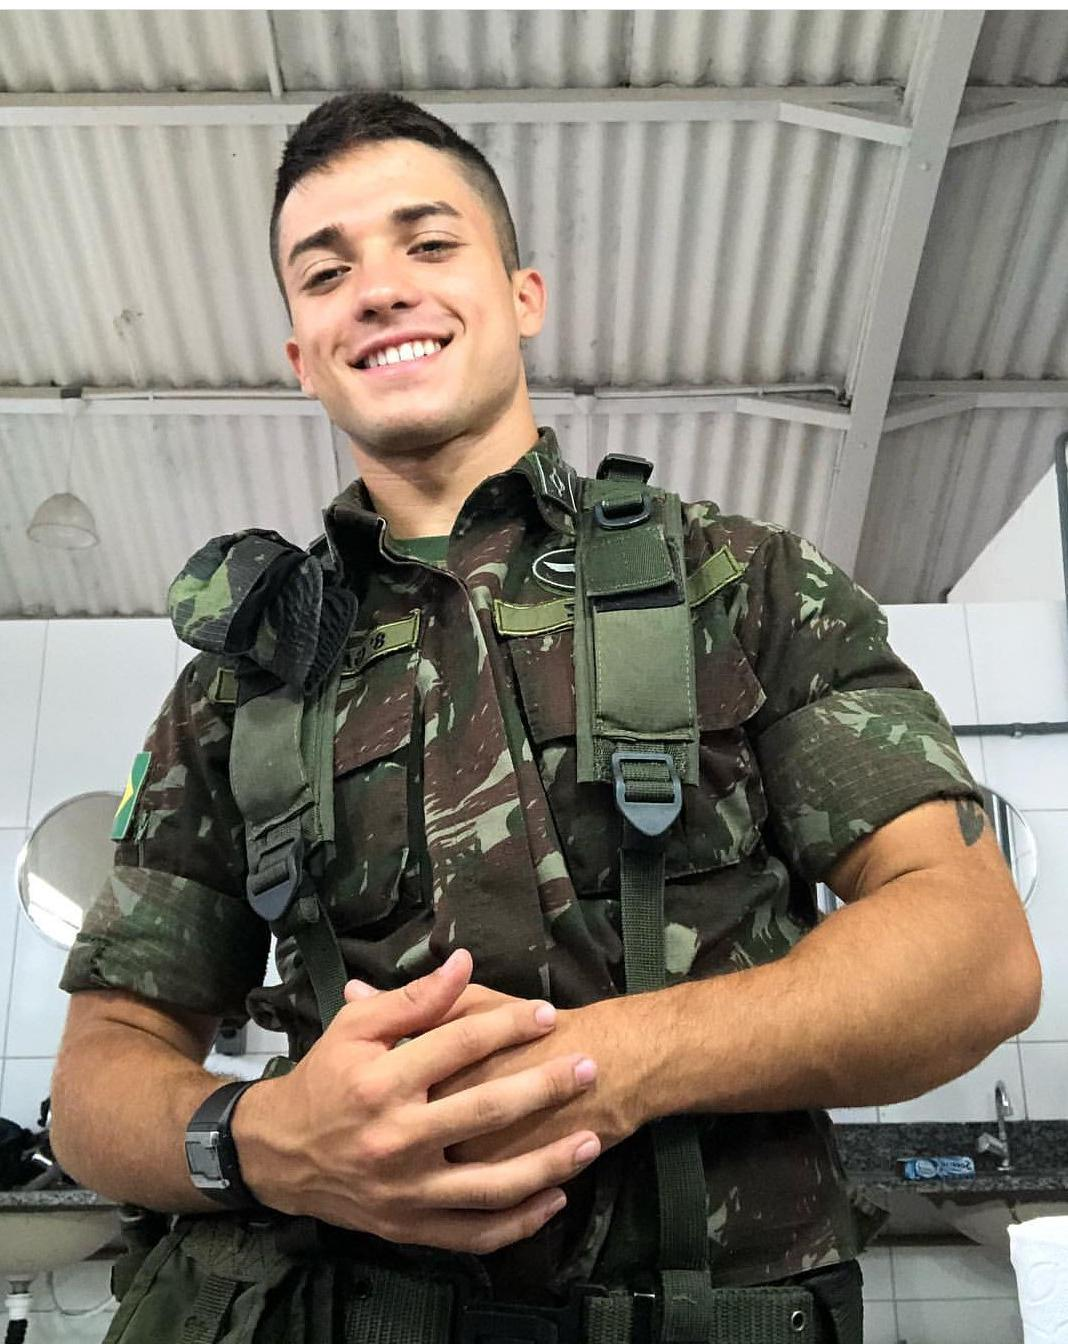 cute-young-smiling-soldier-adorable-military-uniform-sexy-boy